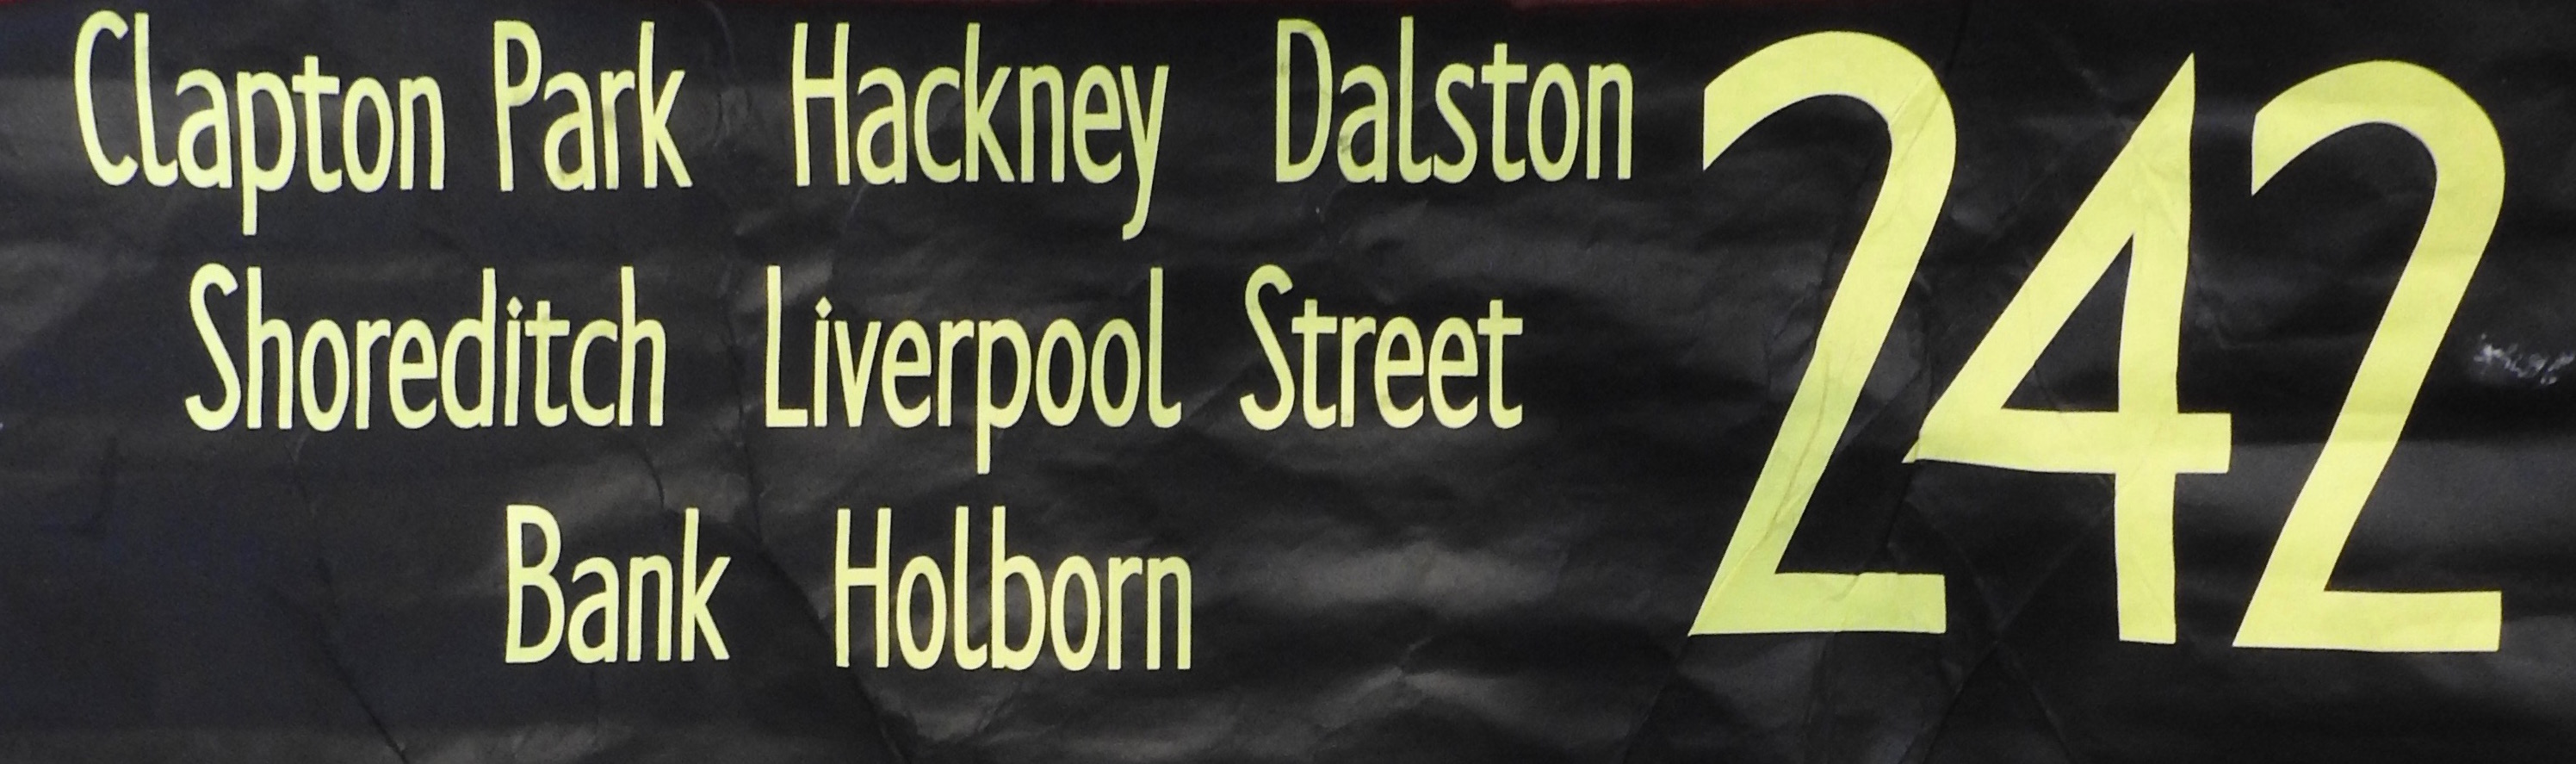 242 Clapton Park, Hackney, Dalston, Shoreditch, Liverpool Street, Bank, Holborn